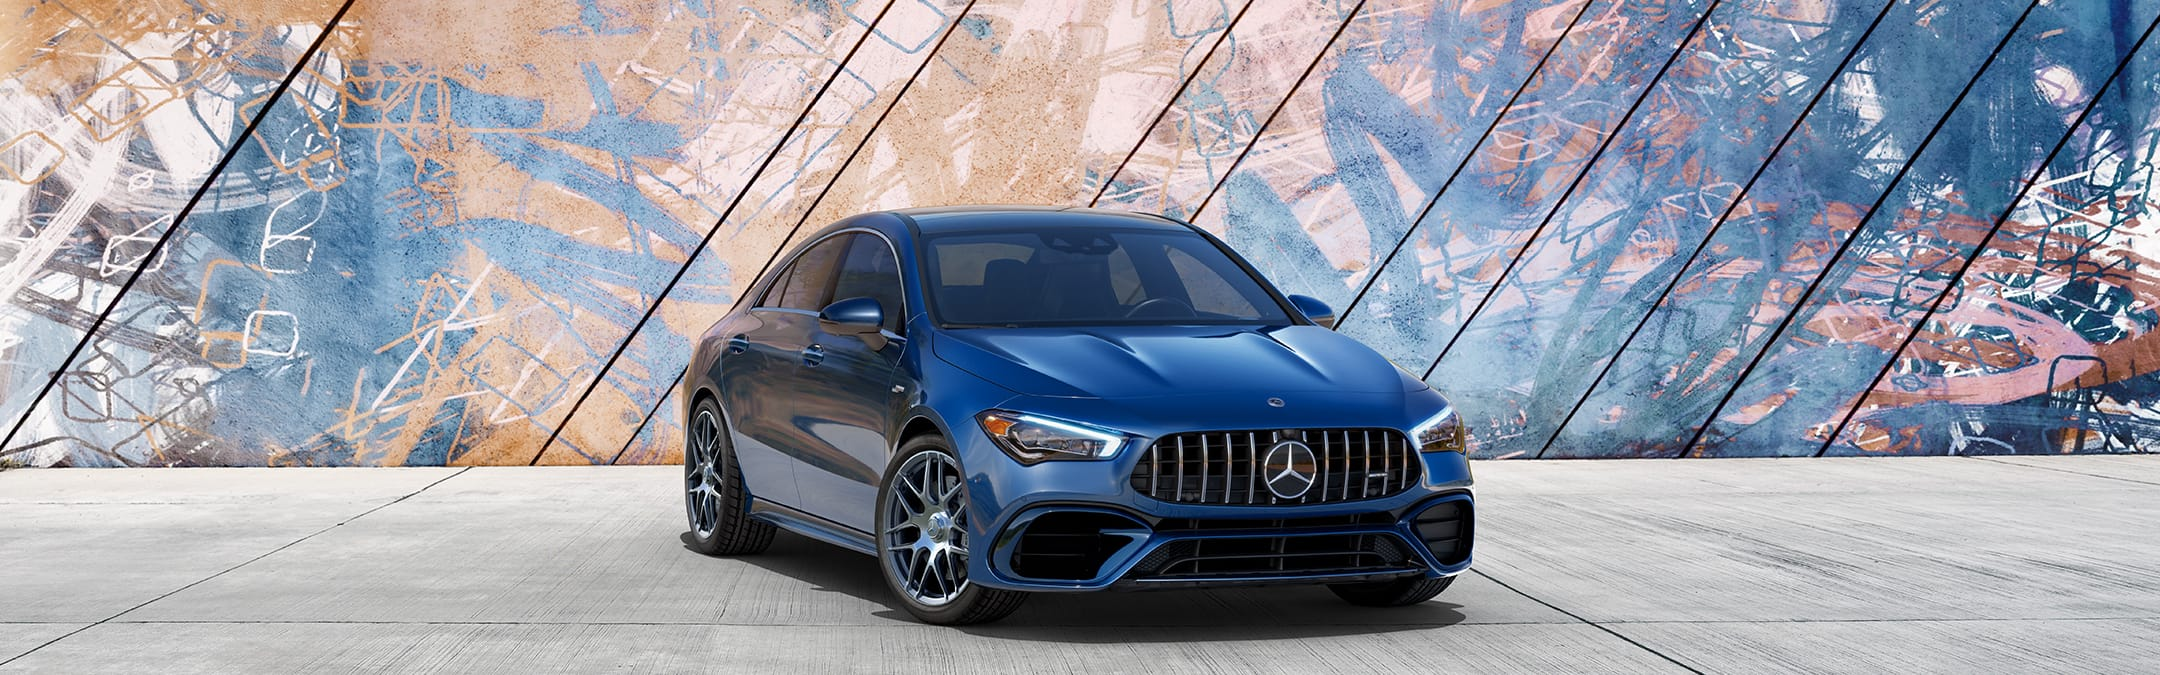 2021 Mercedes-AMG CLA Coupe